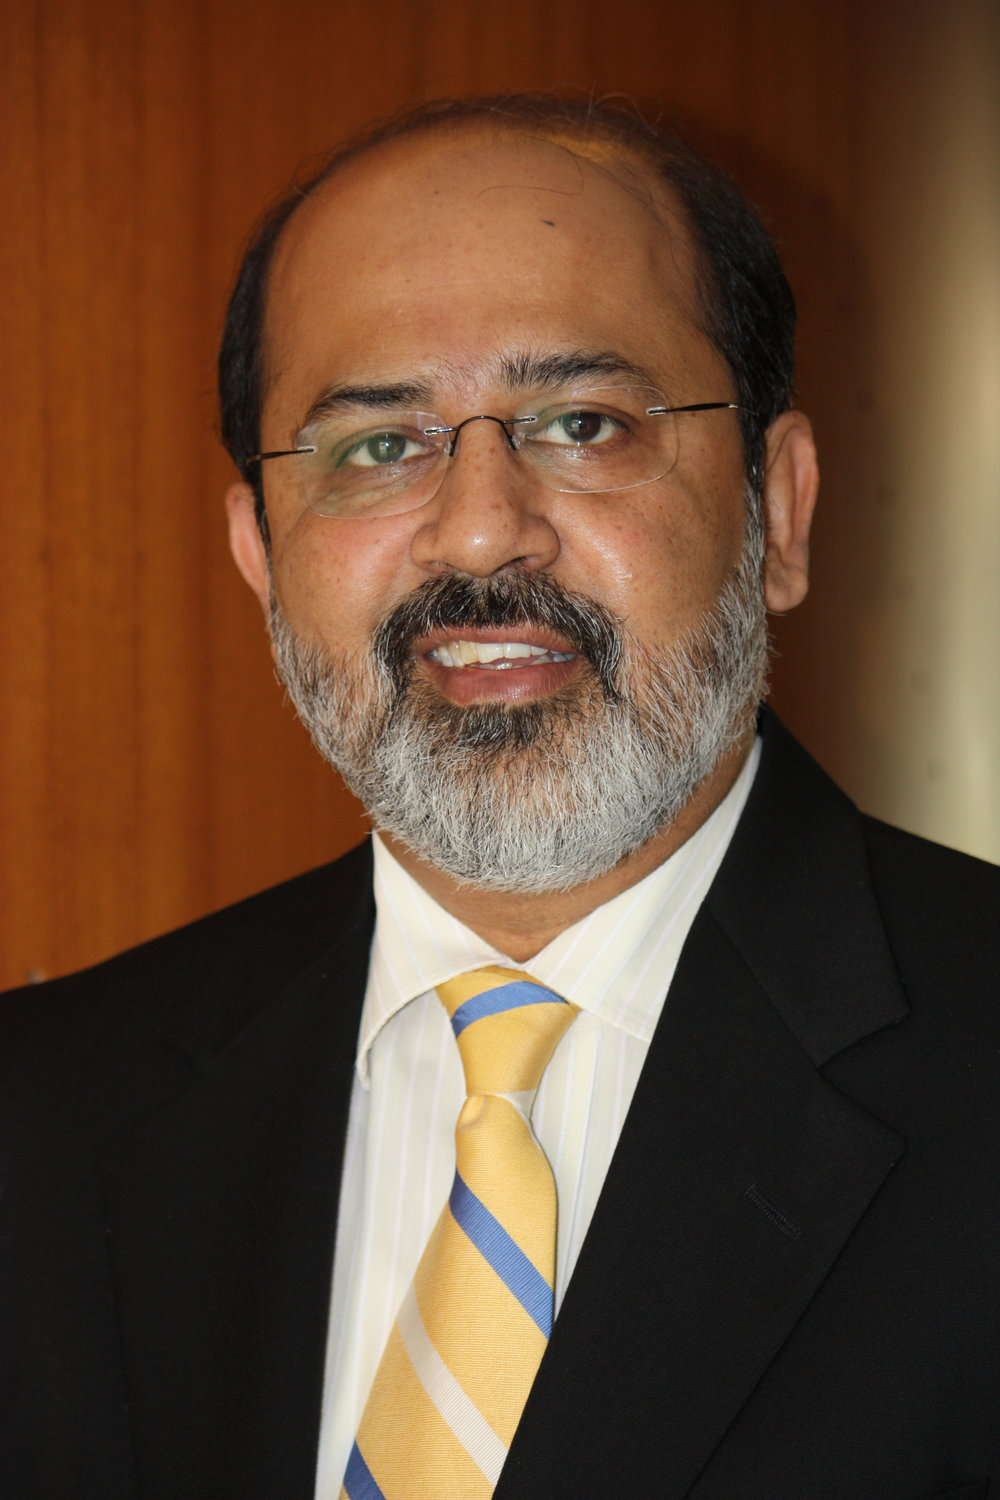 Sunil Sinha, Resident Director, Tata Sons - Middle East & North Africa